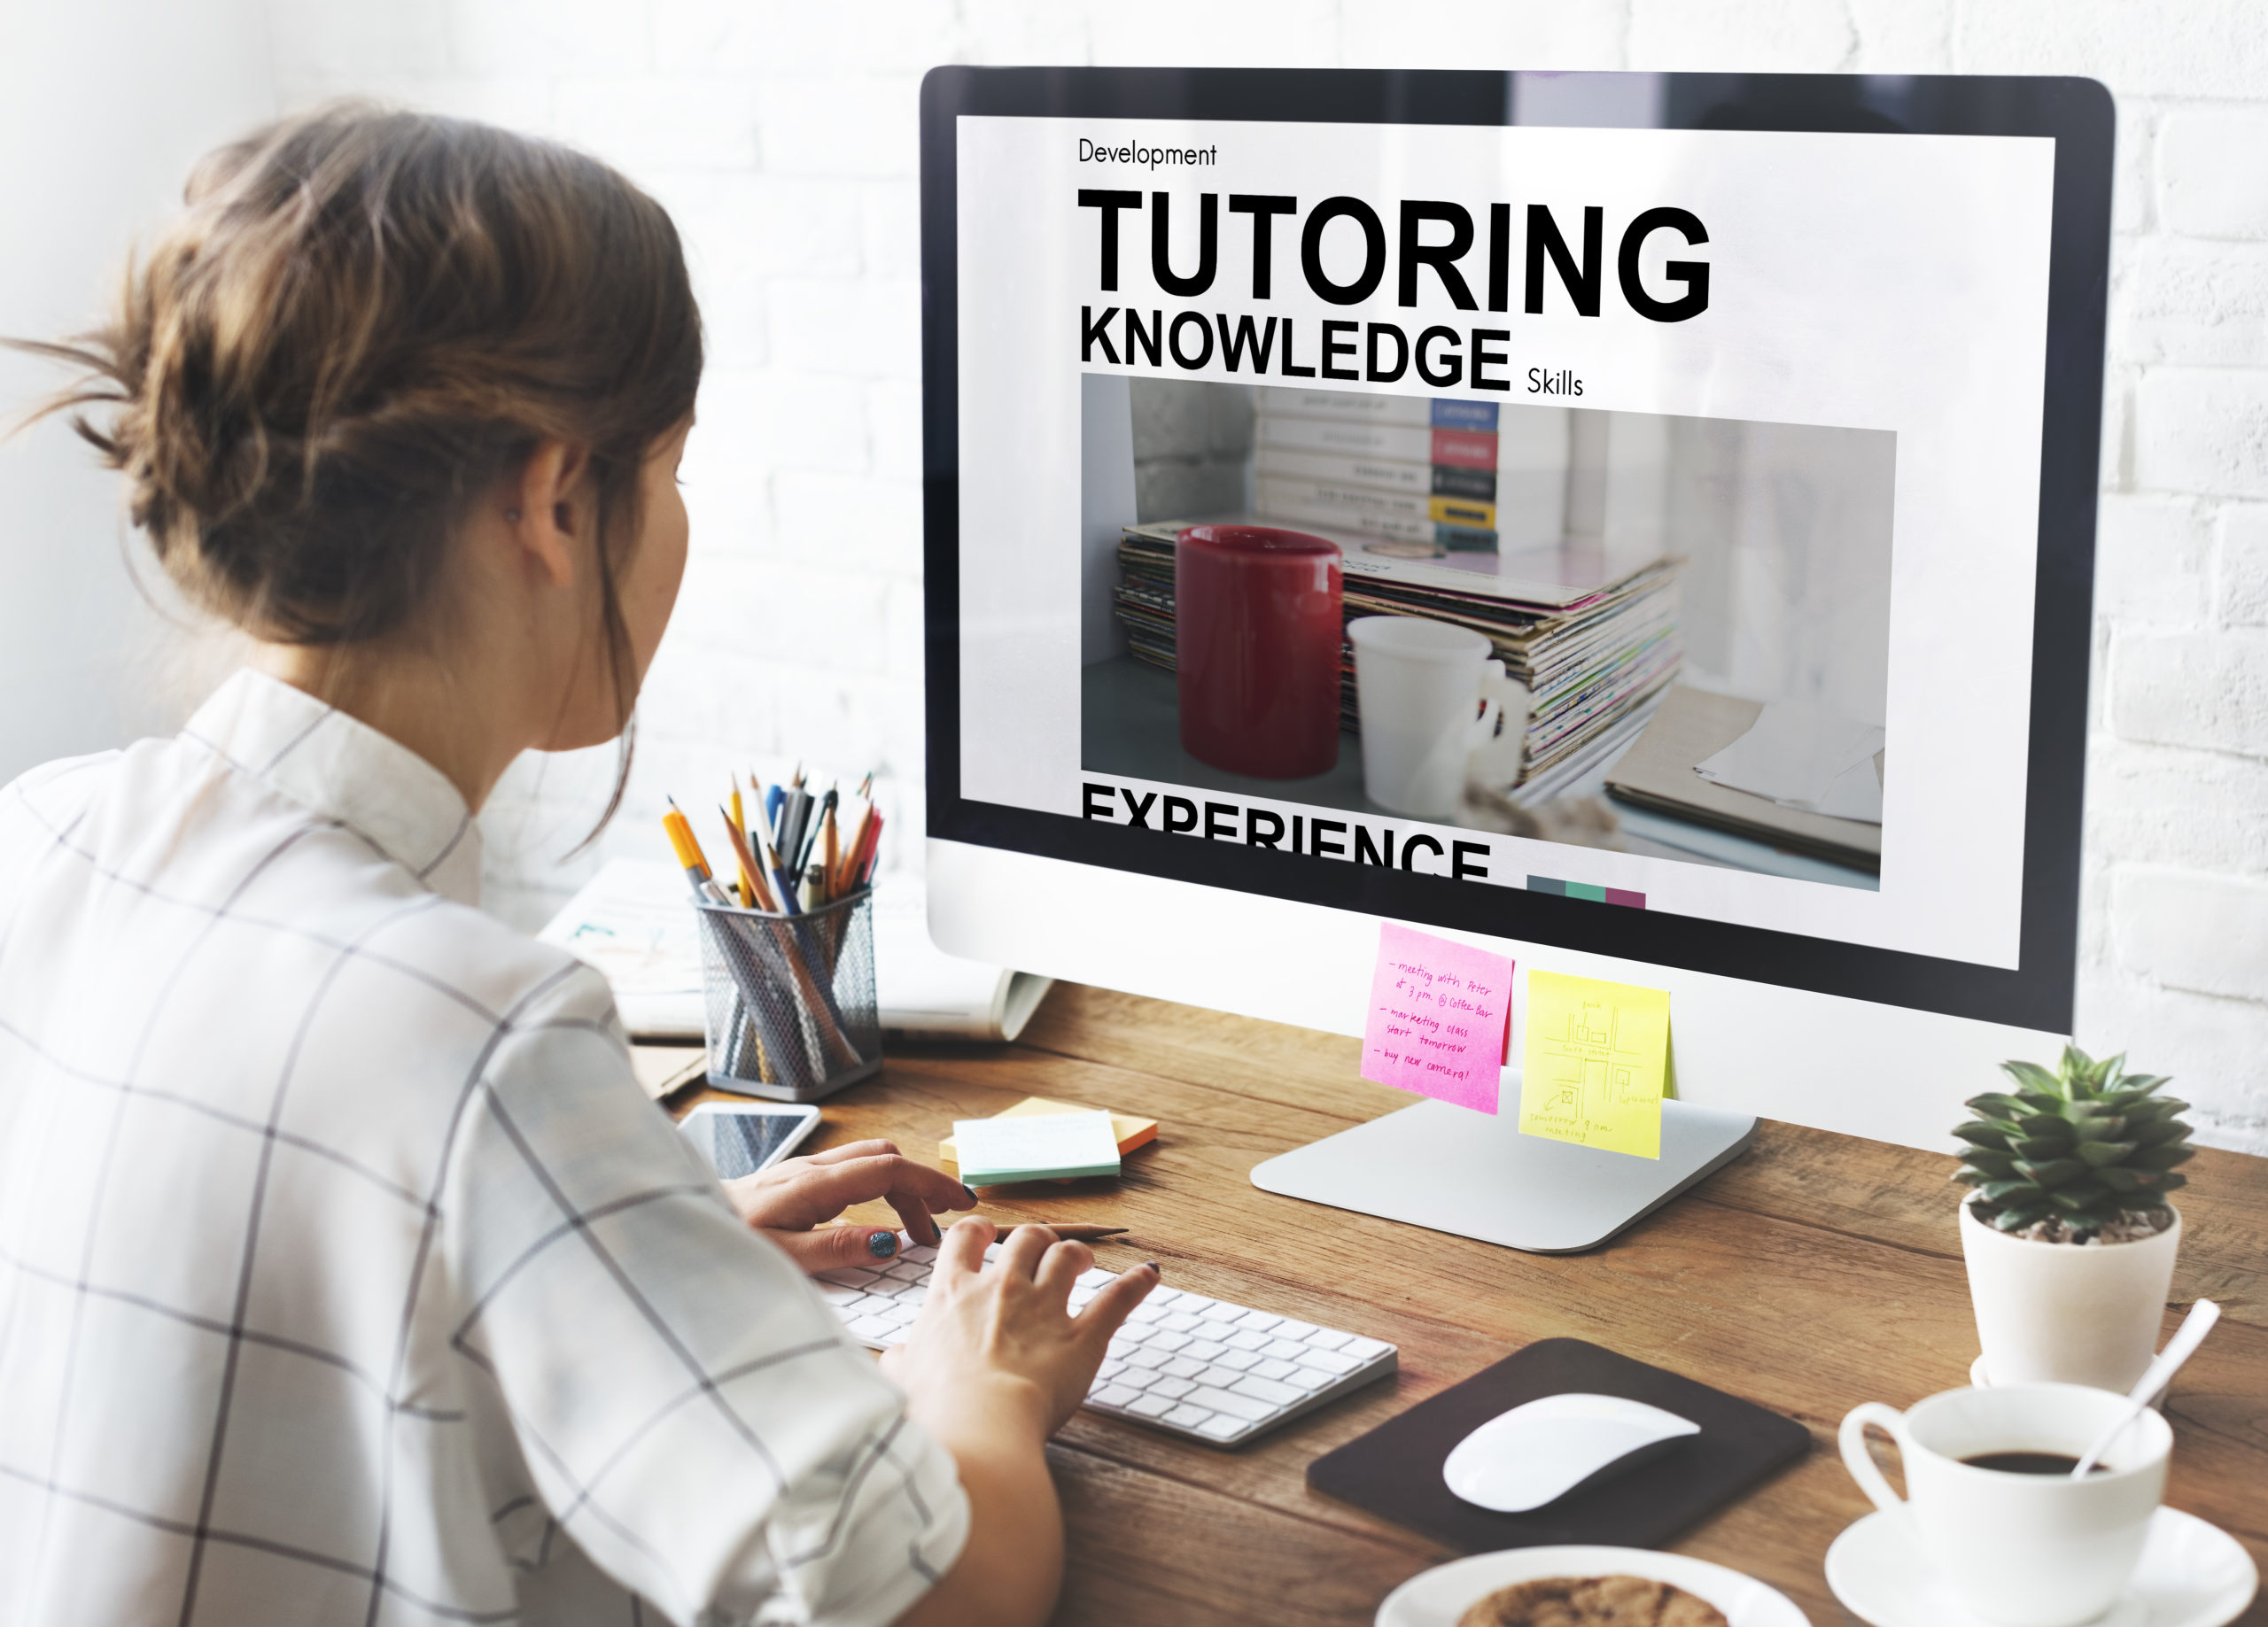 The best tutprong website, course builder and more